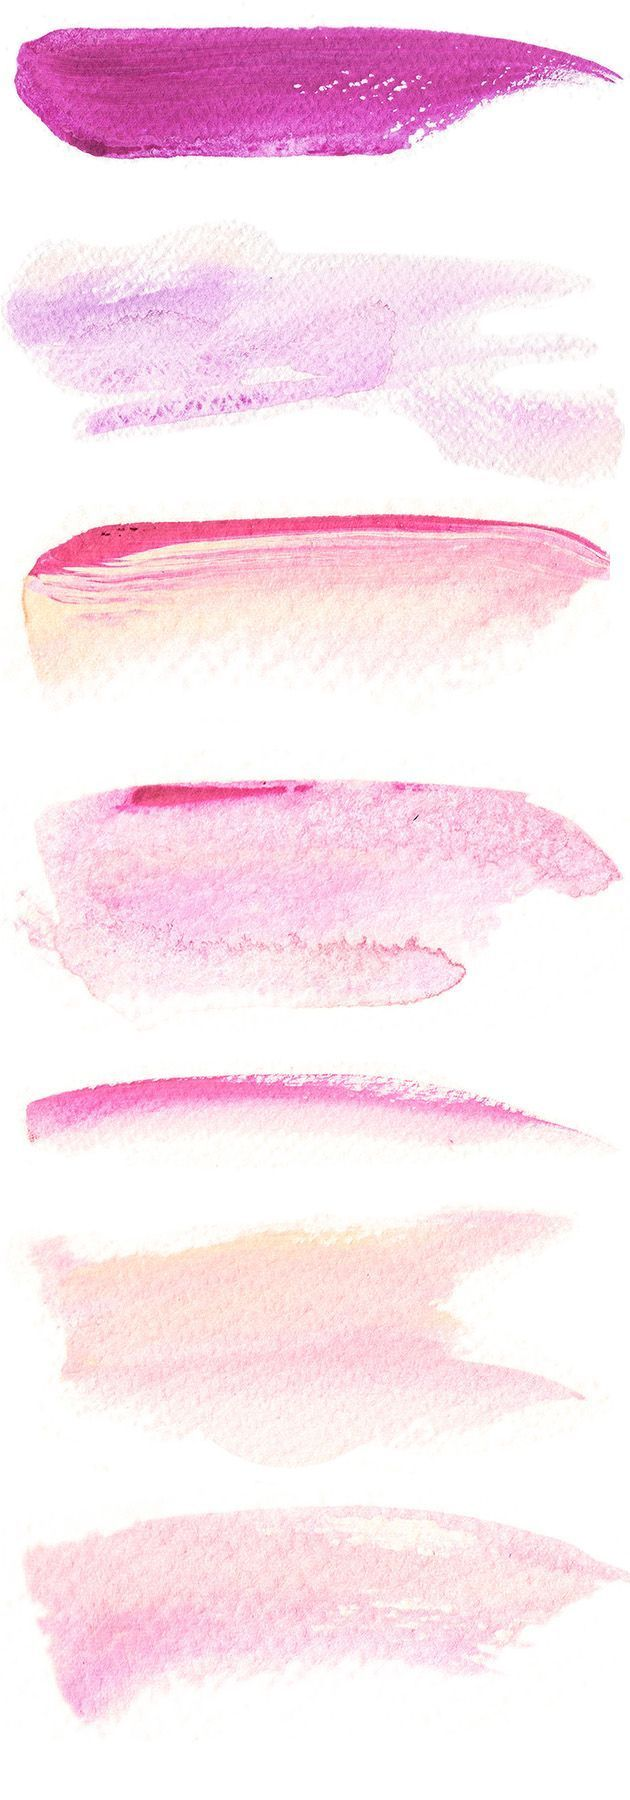 free downloadable #watercolor brushstroke images for graphic design projects on Astrid's blog:  http://www.astridmueller.com/blog/en/free-downloadable-watercolor-brush-strokes  we love the color palette in these!